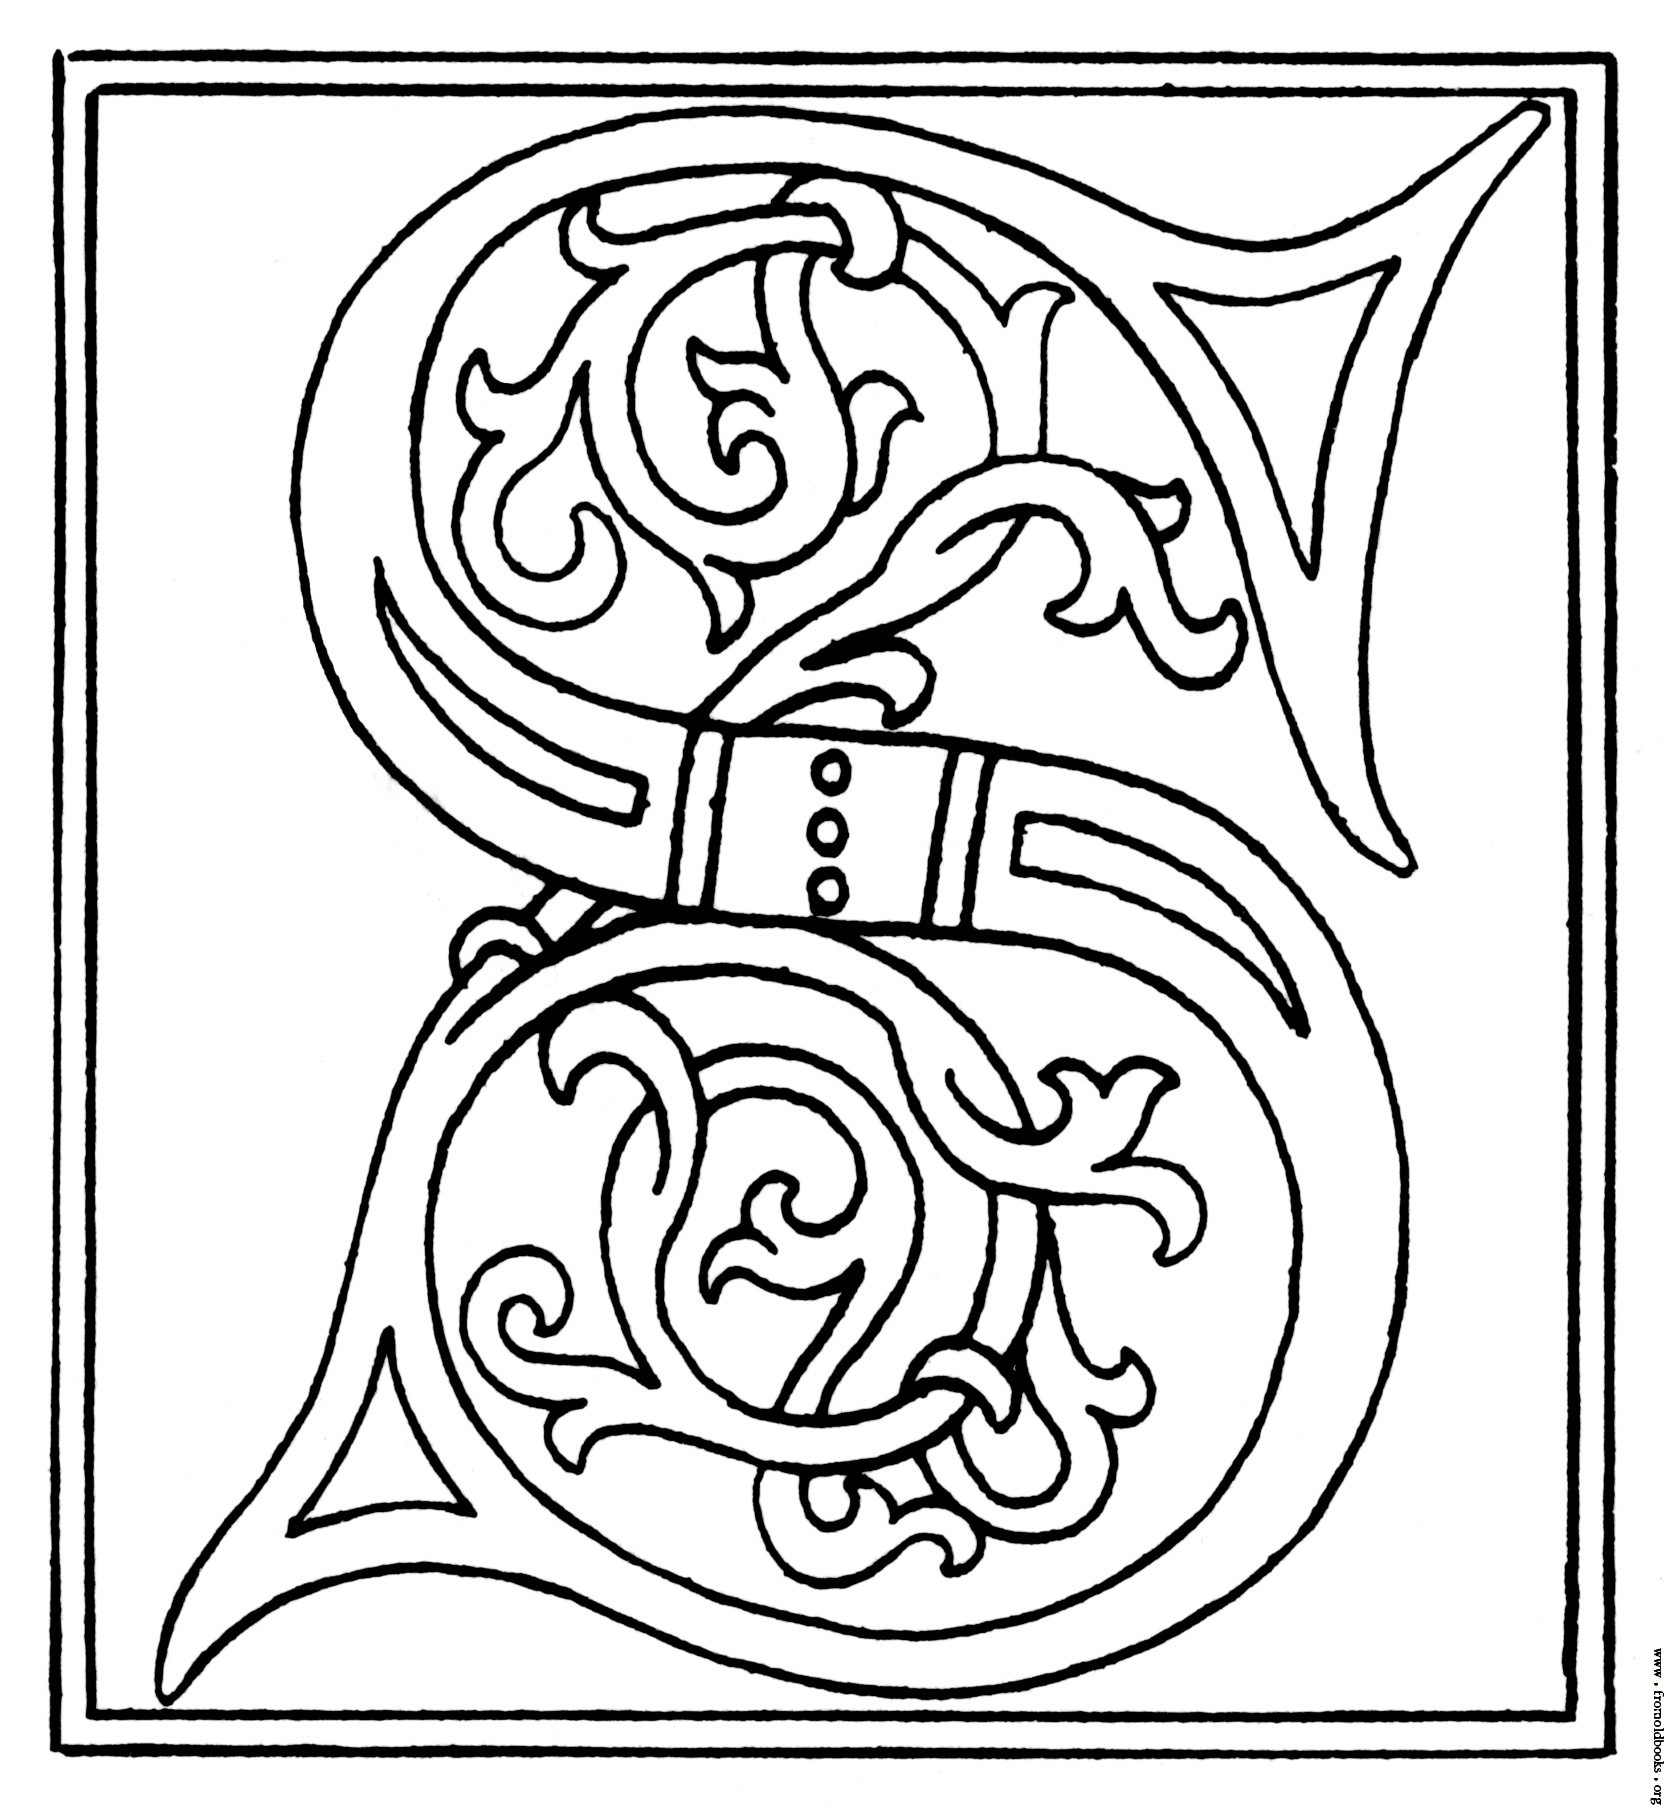 1669x1808 New Celtic Ornament Design From Book Of Kells Coloring Page